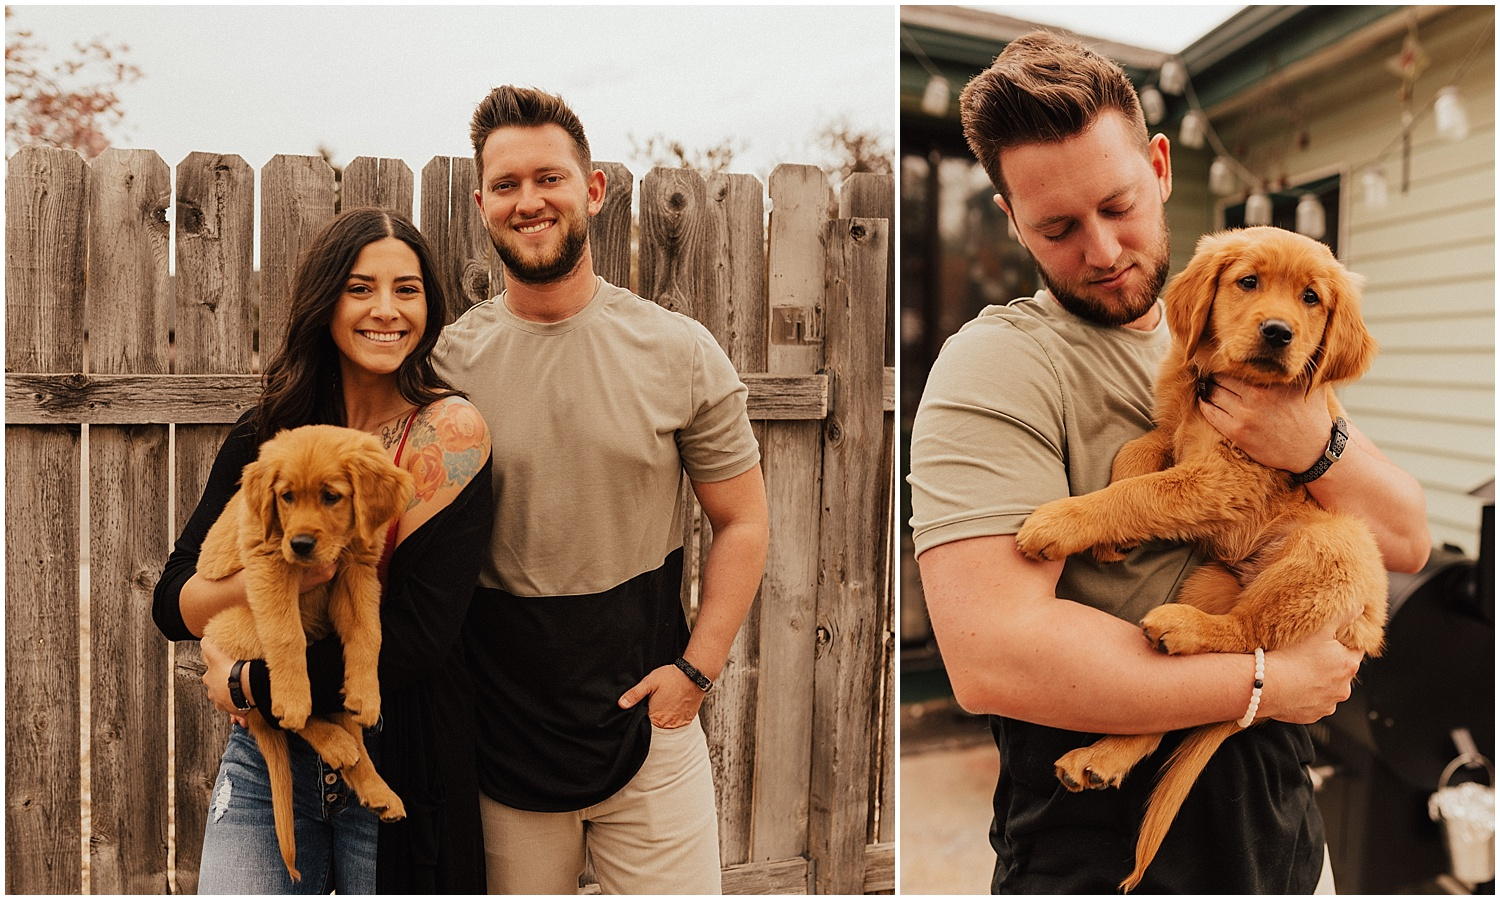 fam portraits with our lil dude